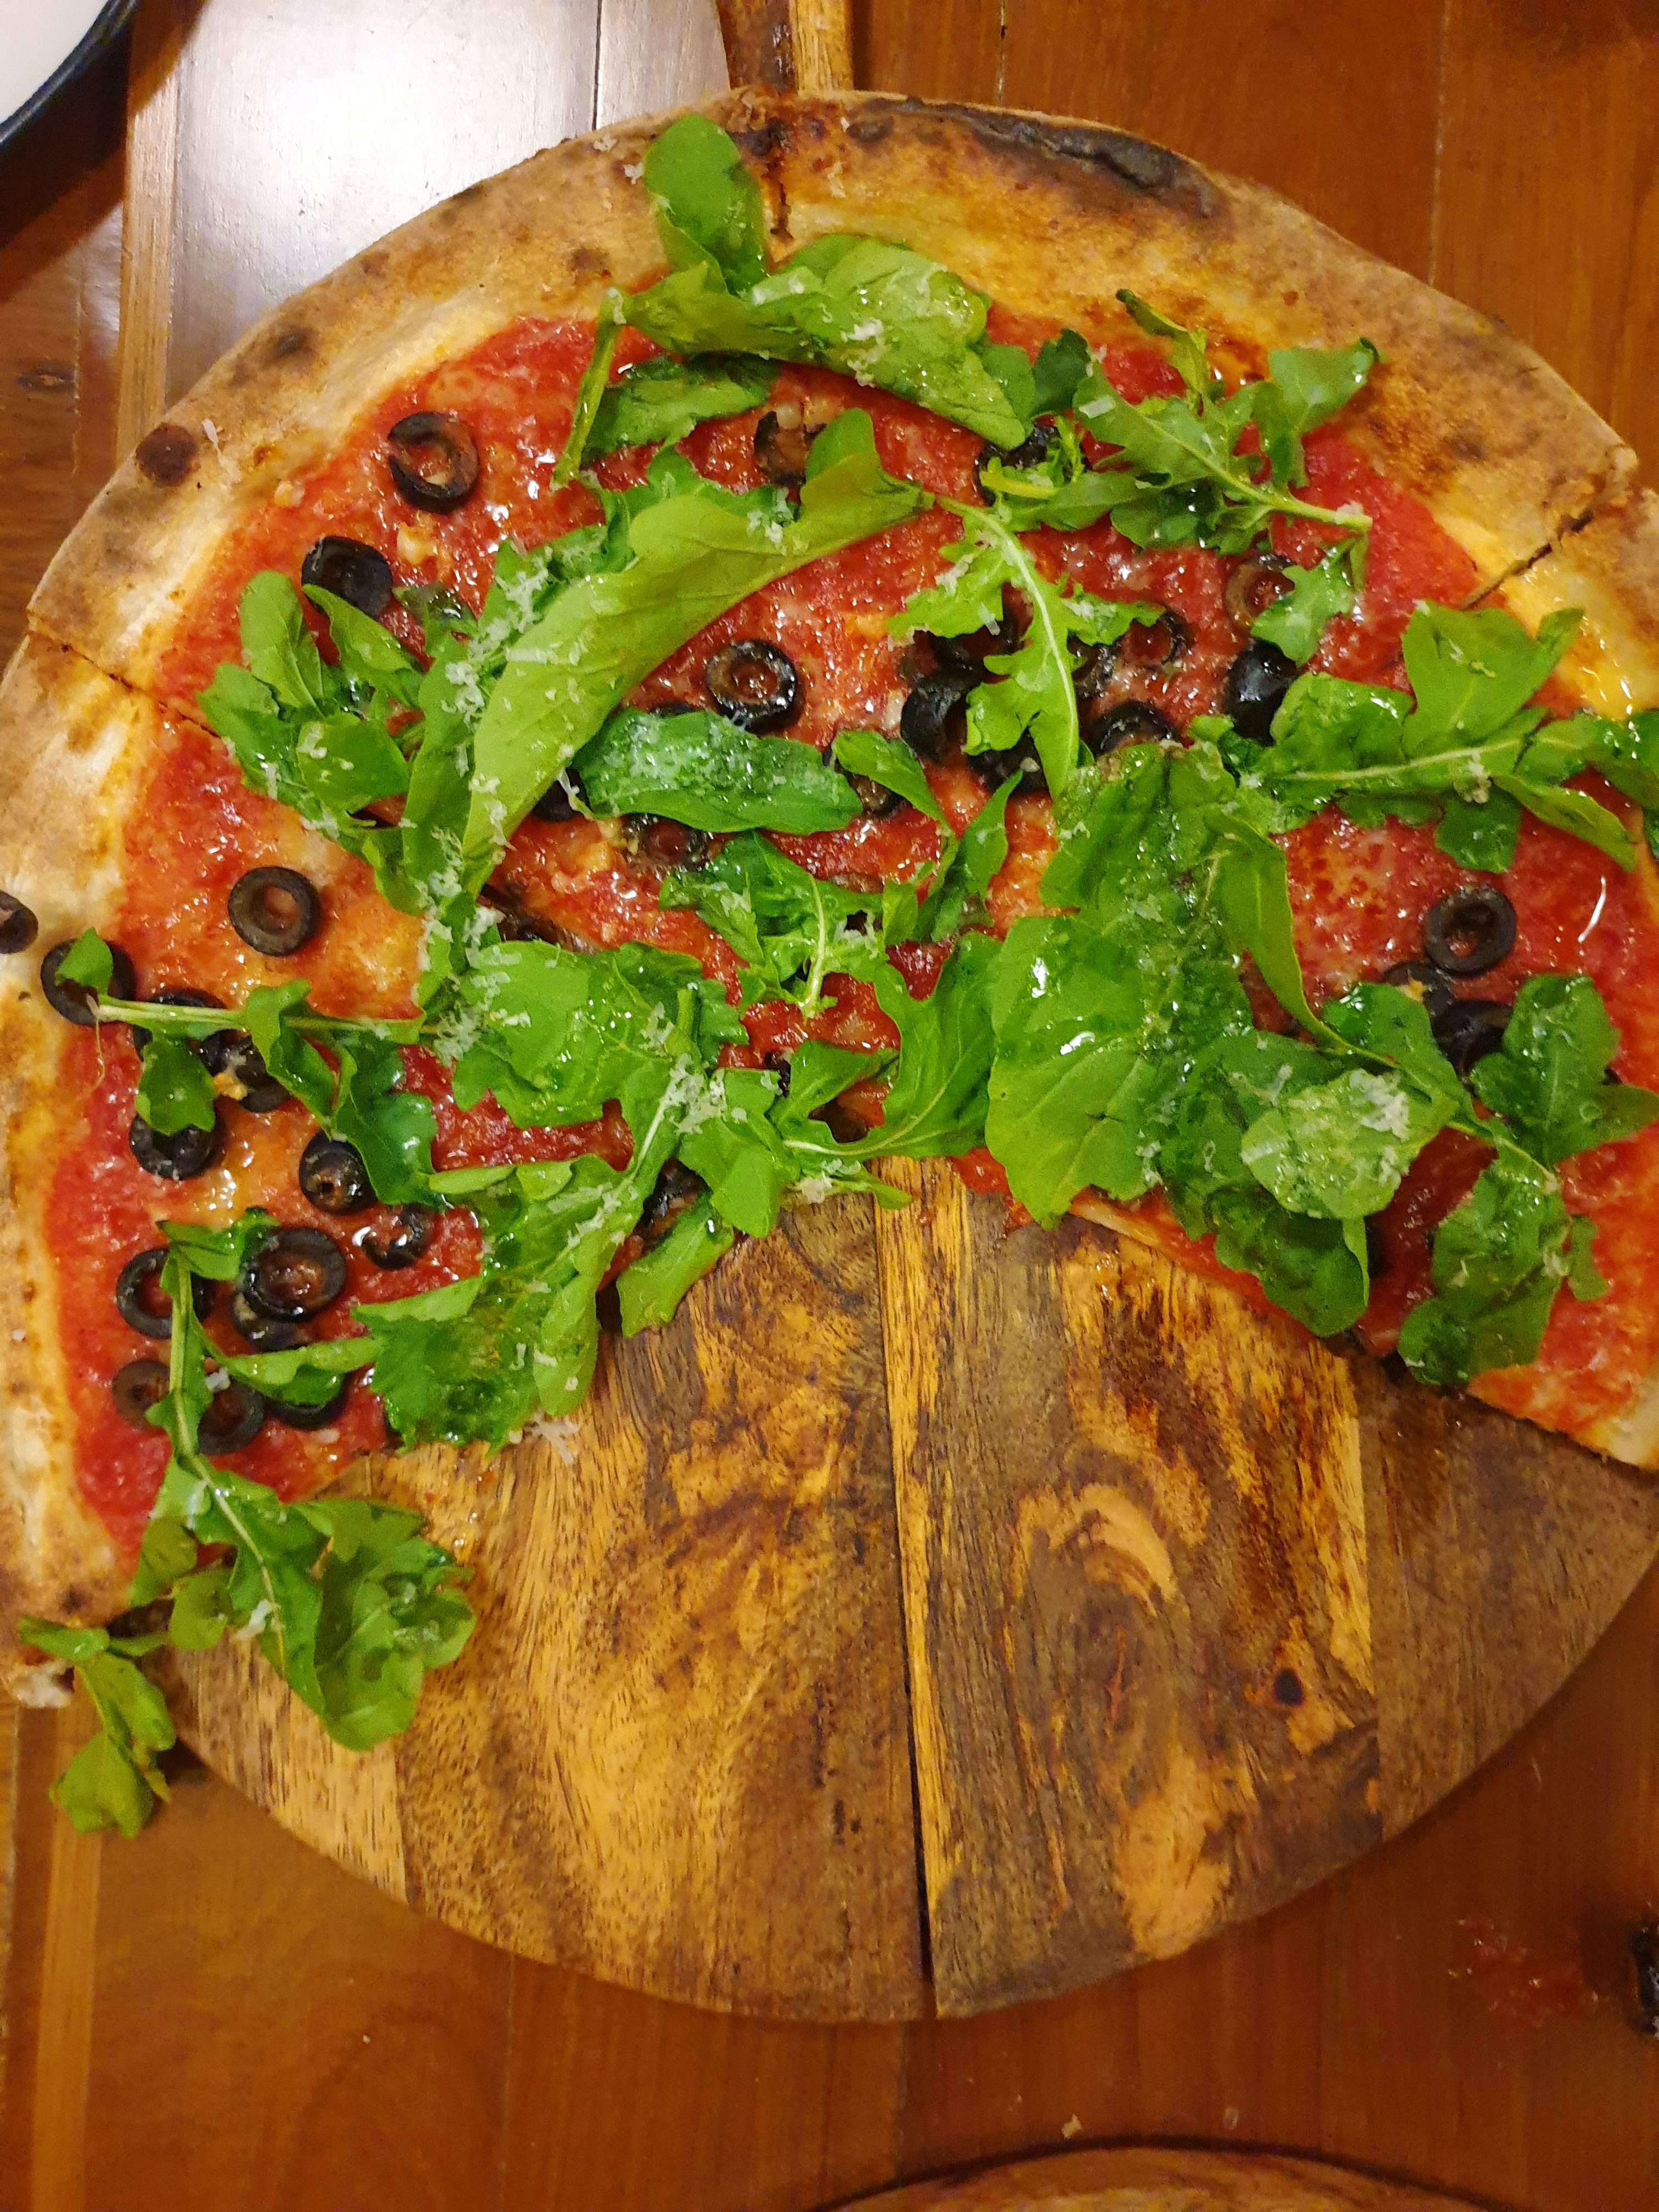 Dish,Food,Cuisine,Ingredient,Pizza,California-style pizza,Flatbread,Leaf vegetable,Meat,Comfort food